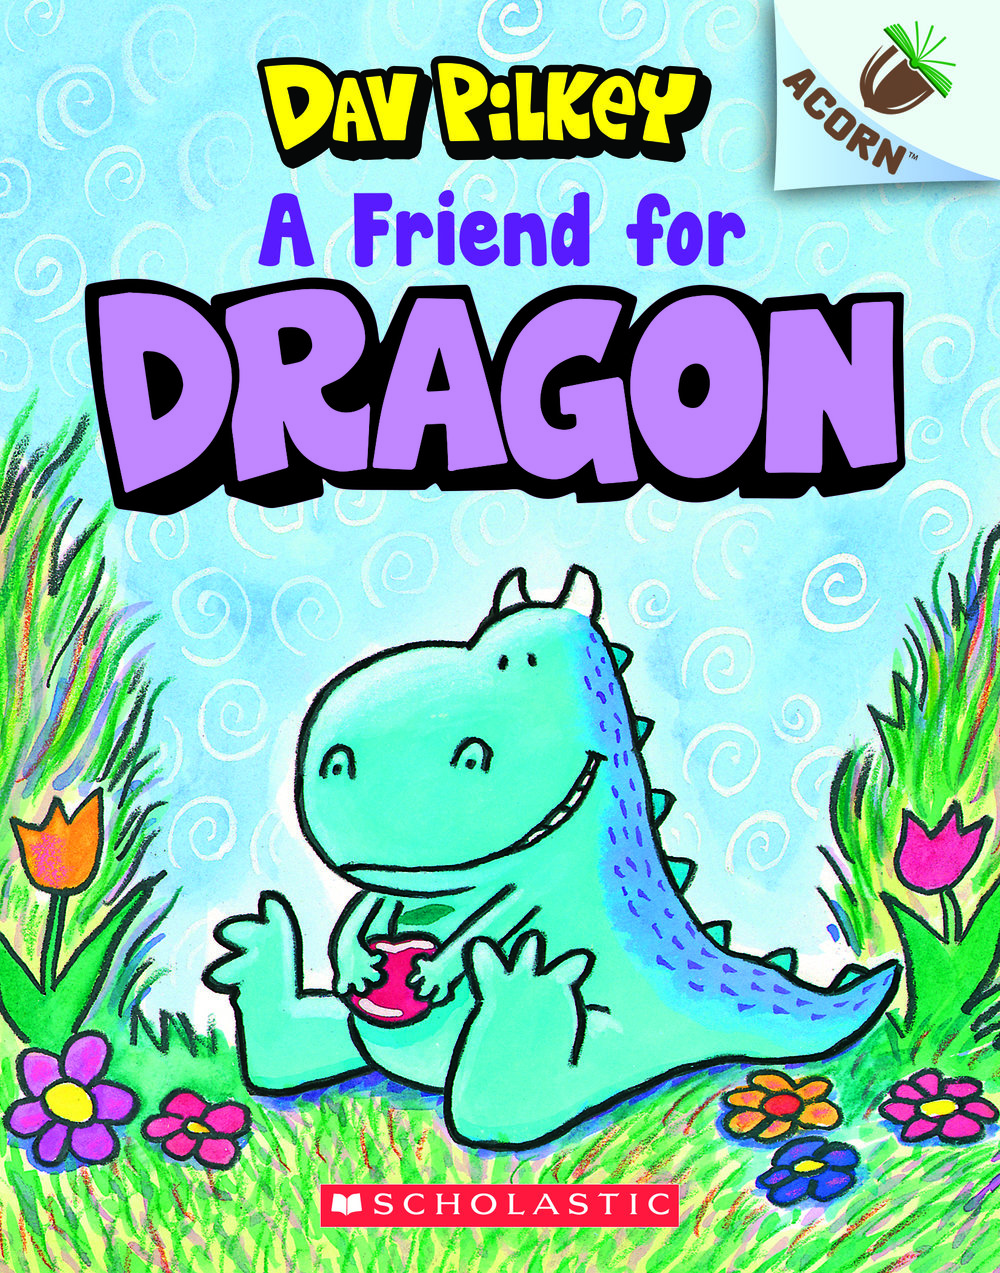 A Friend for Dragon by Day Pilkey